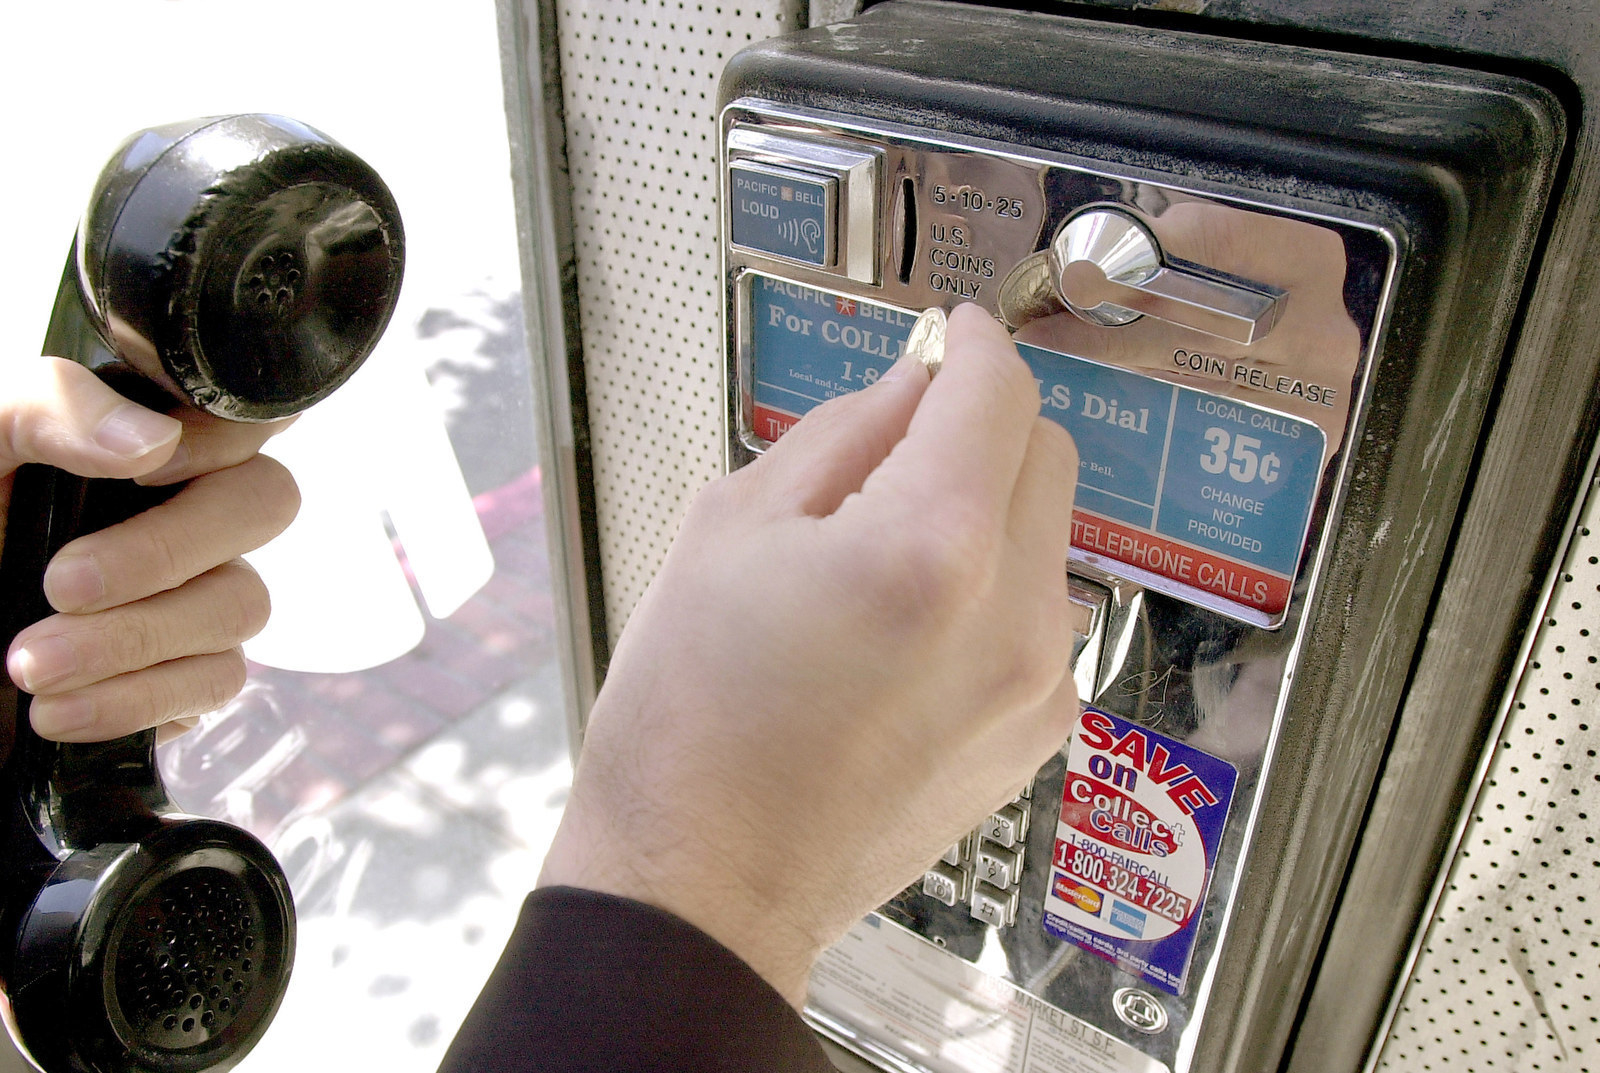 A person putting a quarter into a payphone about to make a call